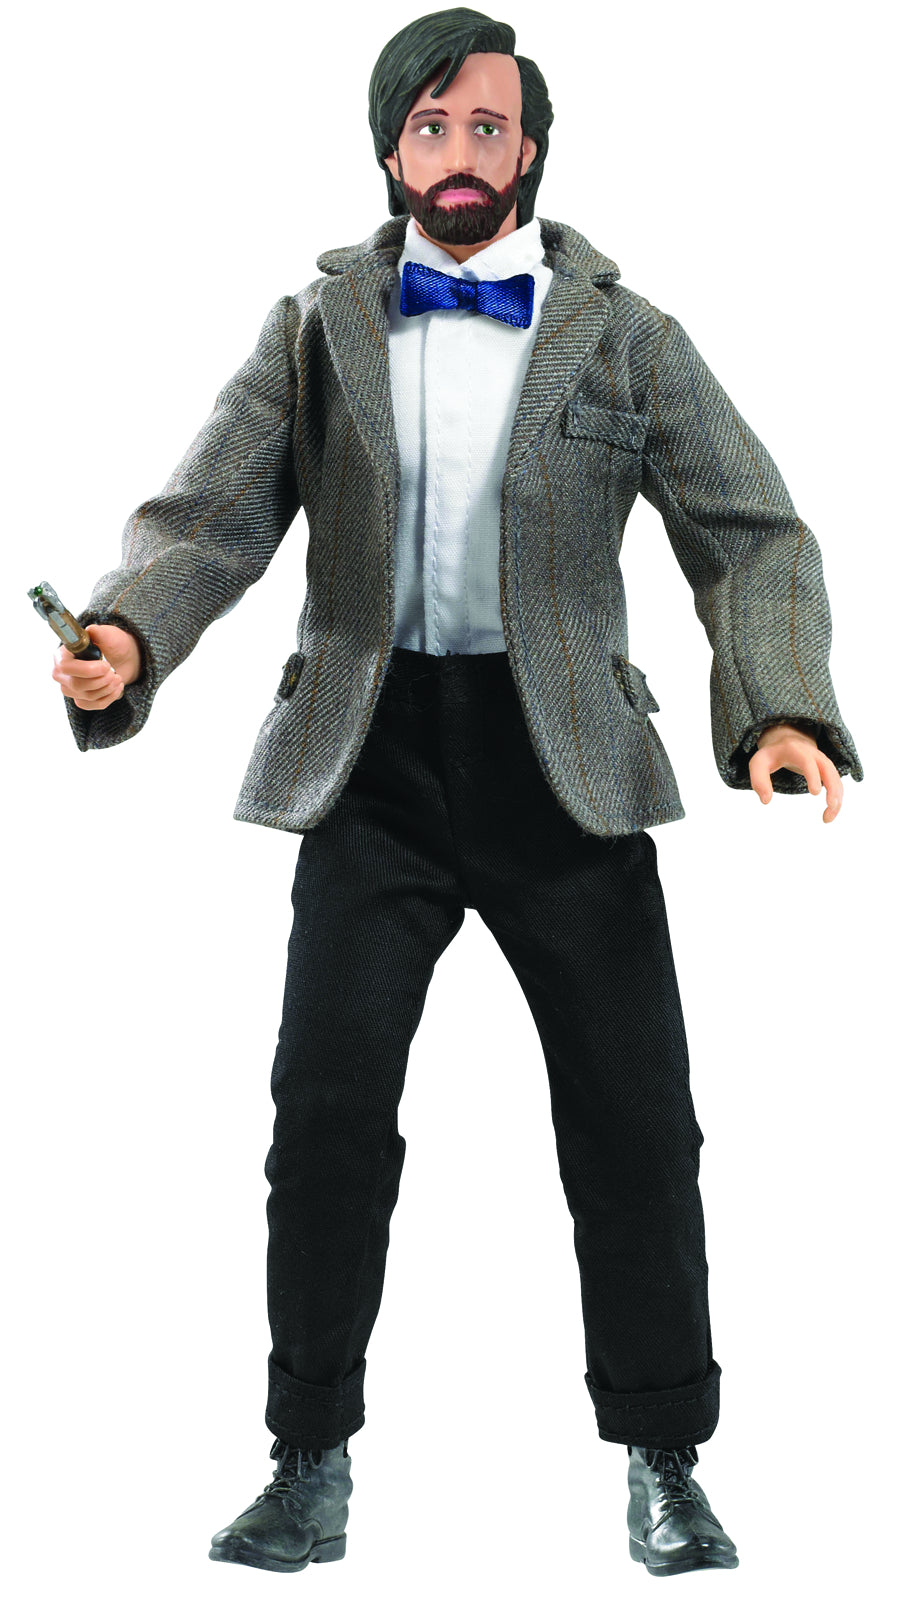 Doctor Who 11th Doctor With Beard 10 Inch Action Figure